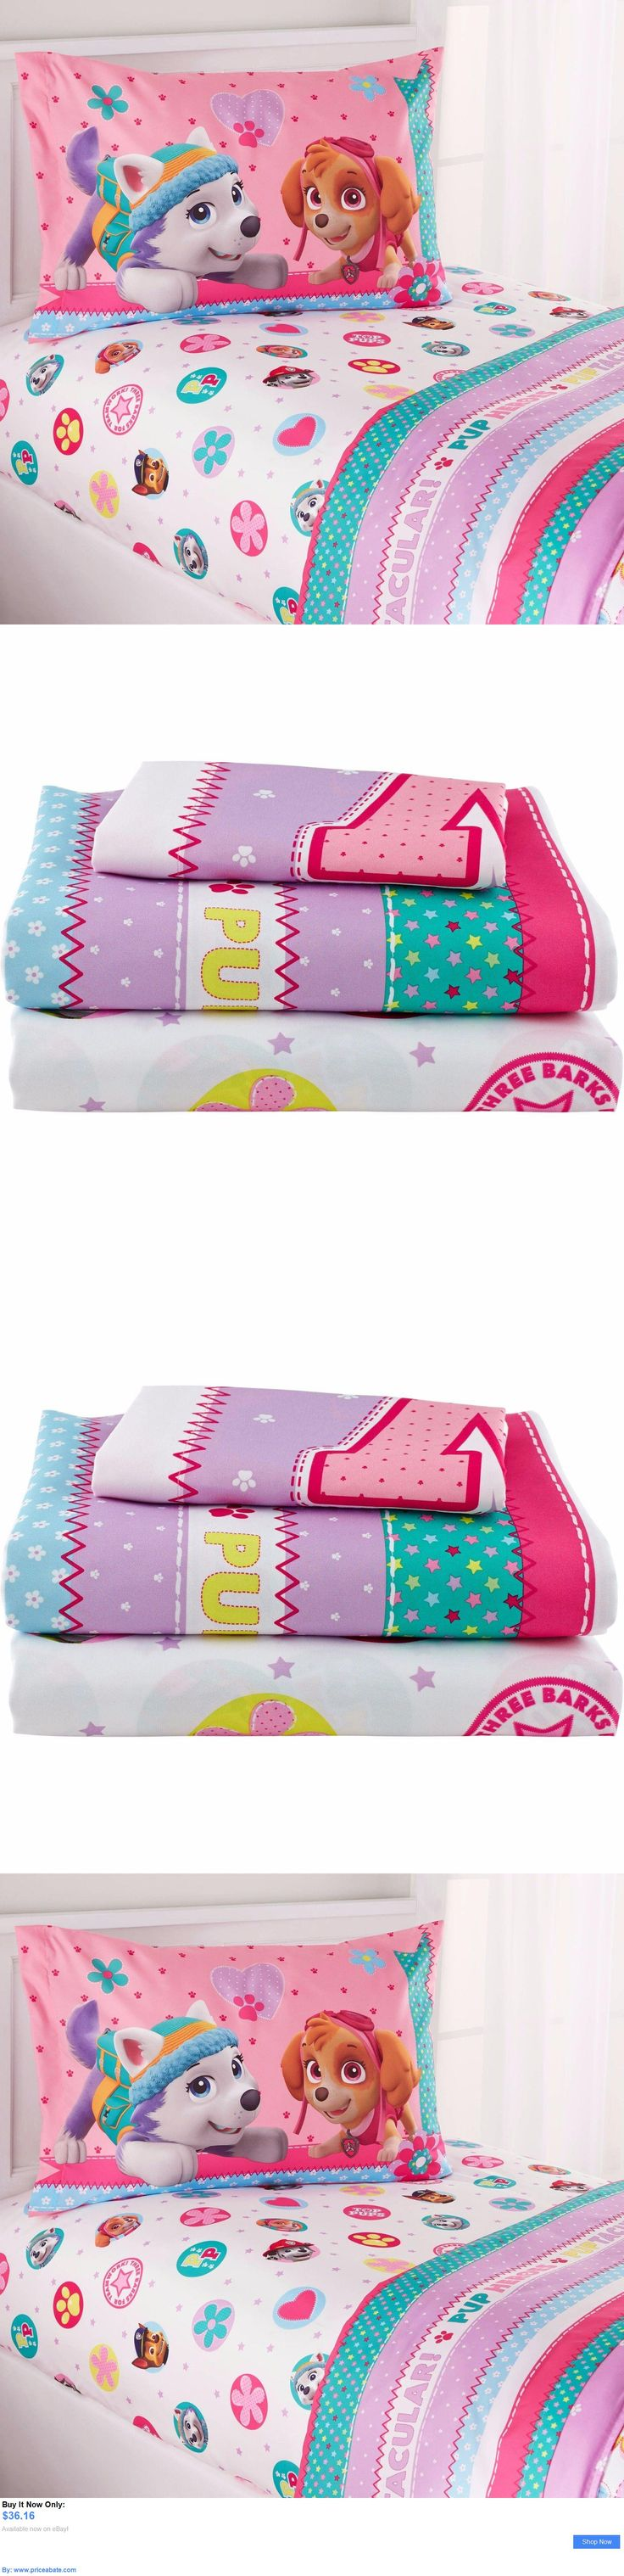 1000 Ideas About Paw Patrol Bedding On Pinterest Paw